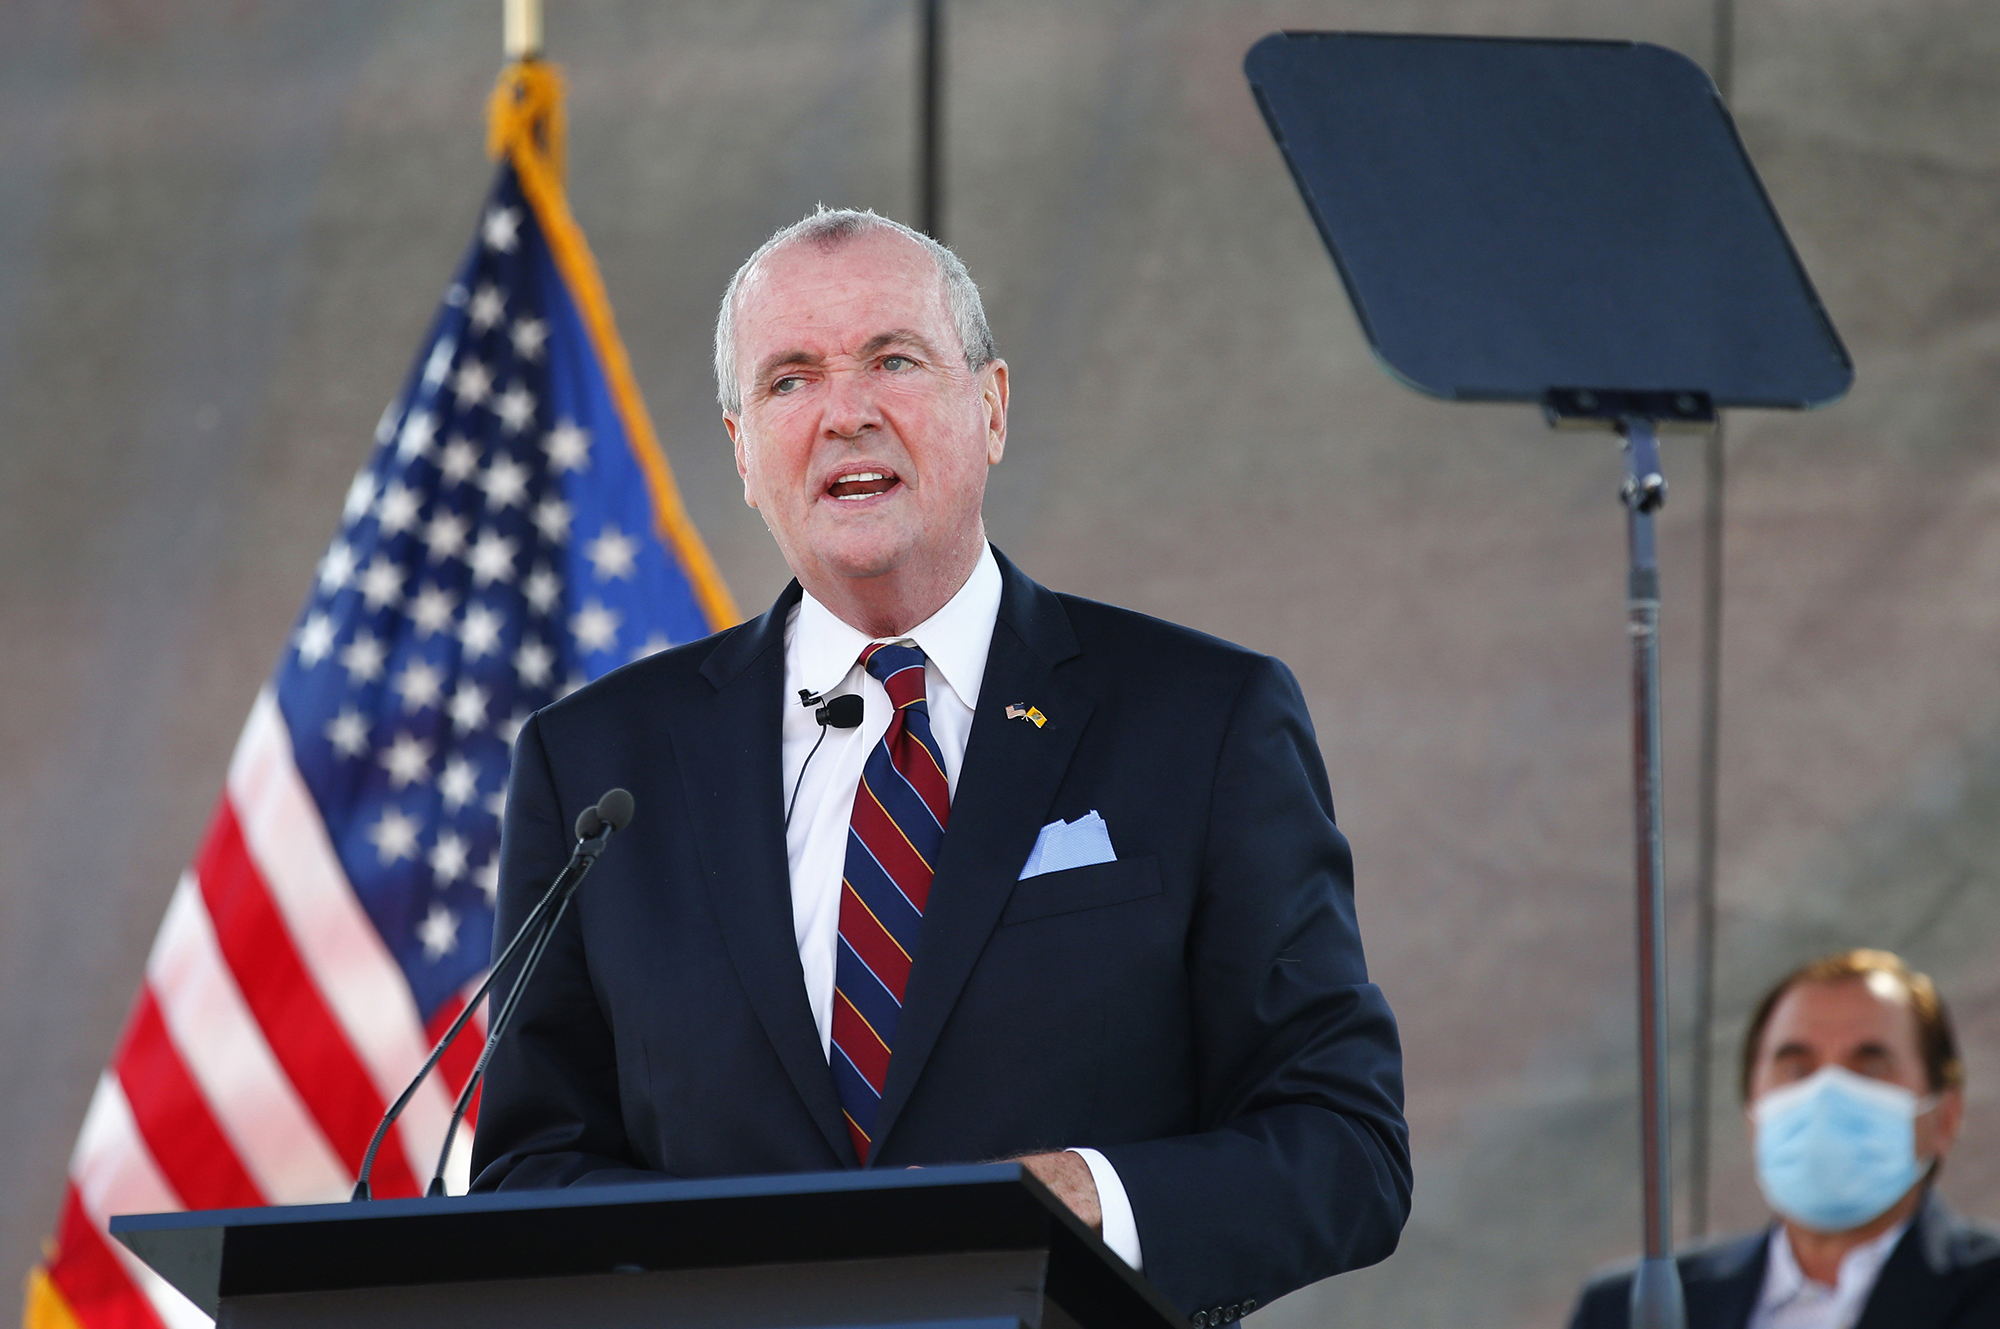 In this Aug. 25, 2020, file photo, New Jersey Gov. Phil Murphy speaks during his 2021 budget address at SHI Stadium at Rutgers University in Piscataway, New Jersey.